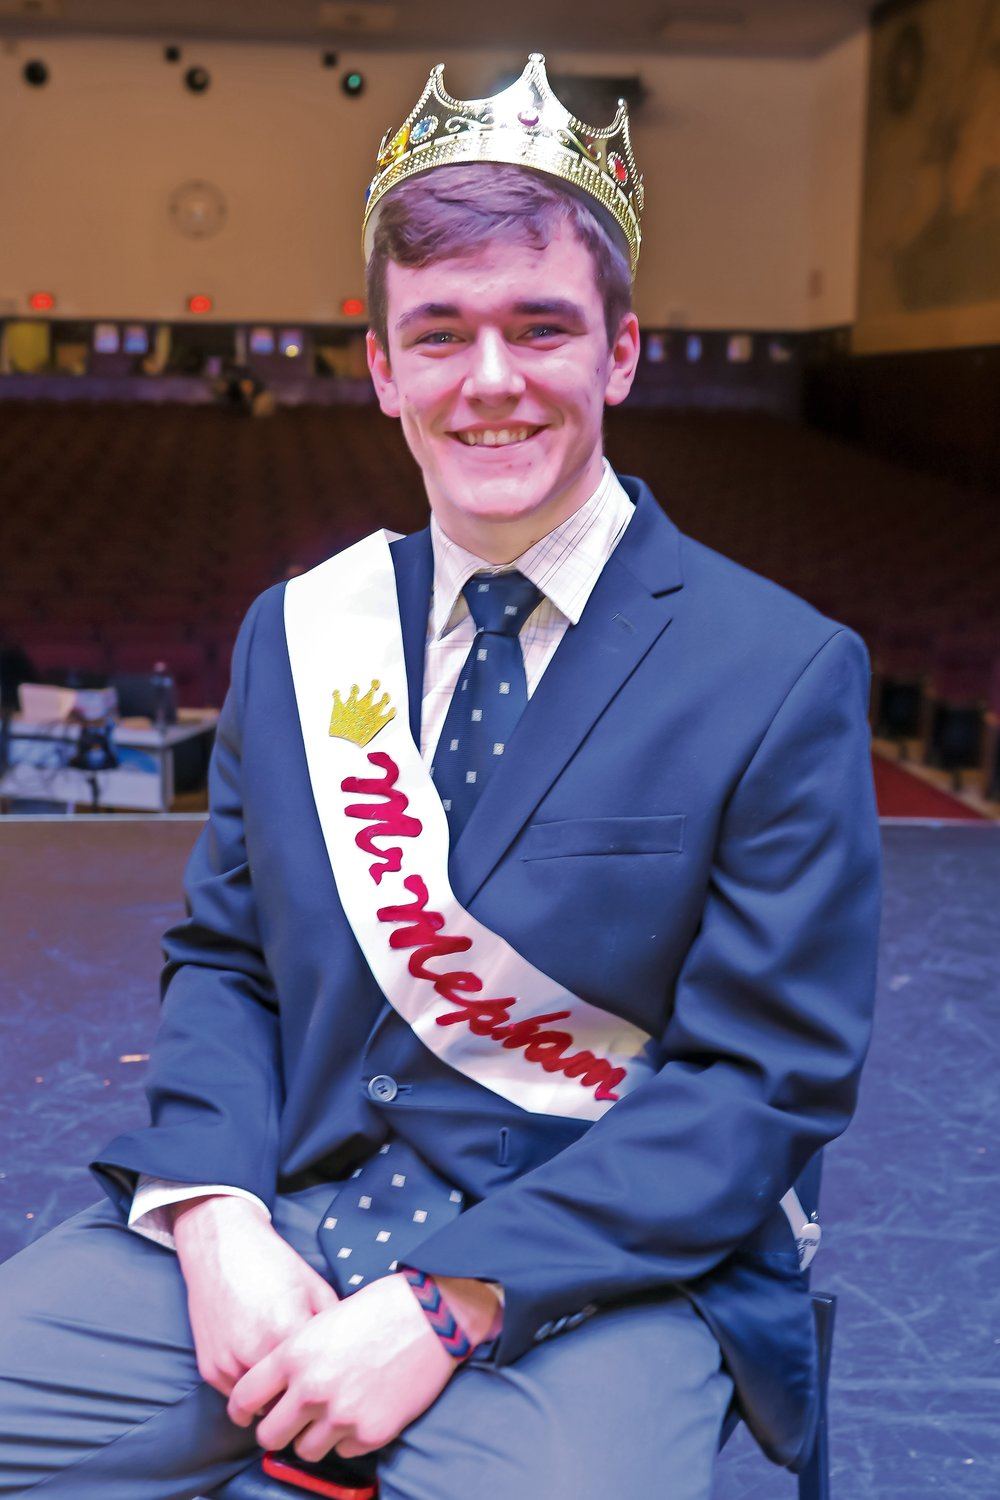 Kenneth Franquiz, winner of the 2020 Mr. Mepham Pageant.